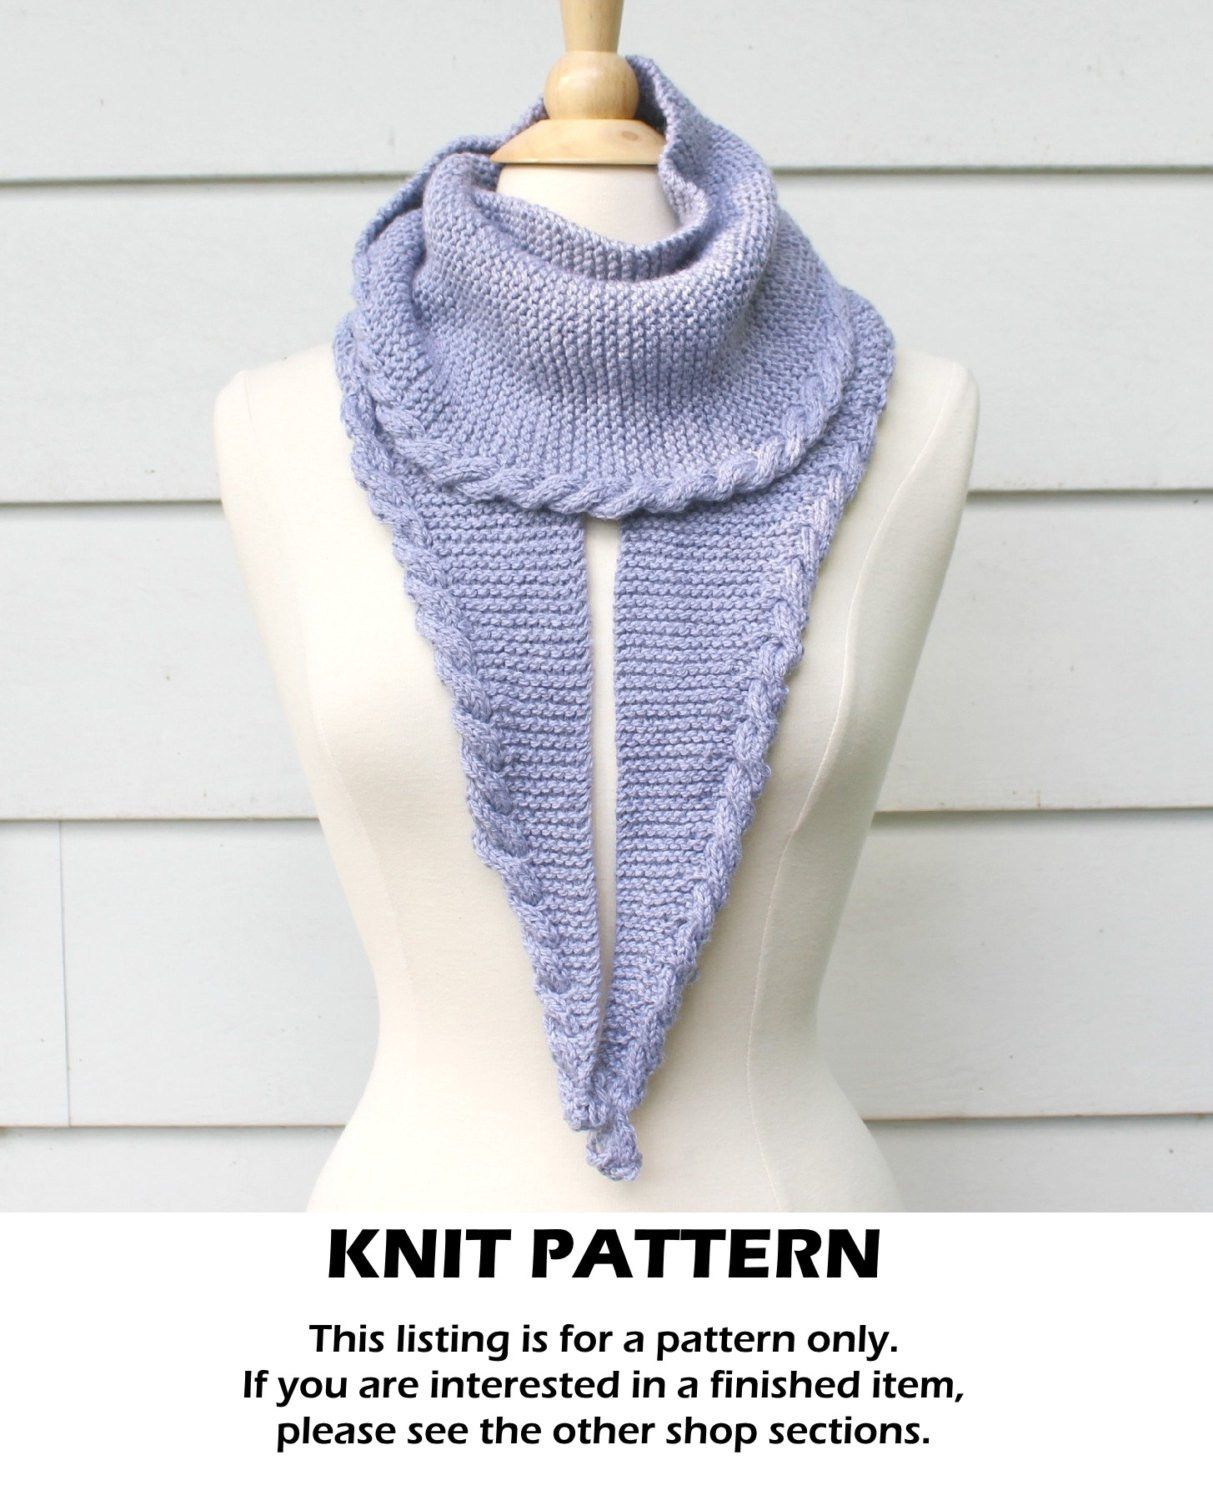 Fresh Knit Pattern Knit Scarf Pattern Cable Scarf Pattern Knit Cable Knit Scarf Of Delightful 48 Ideas Cable Knit Scarf